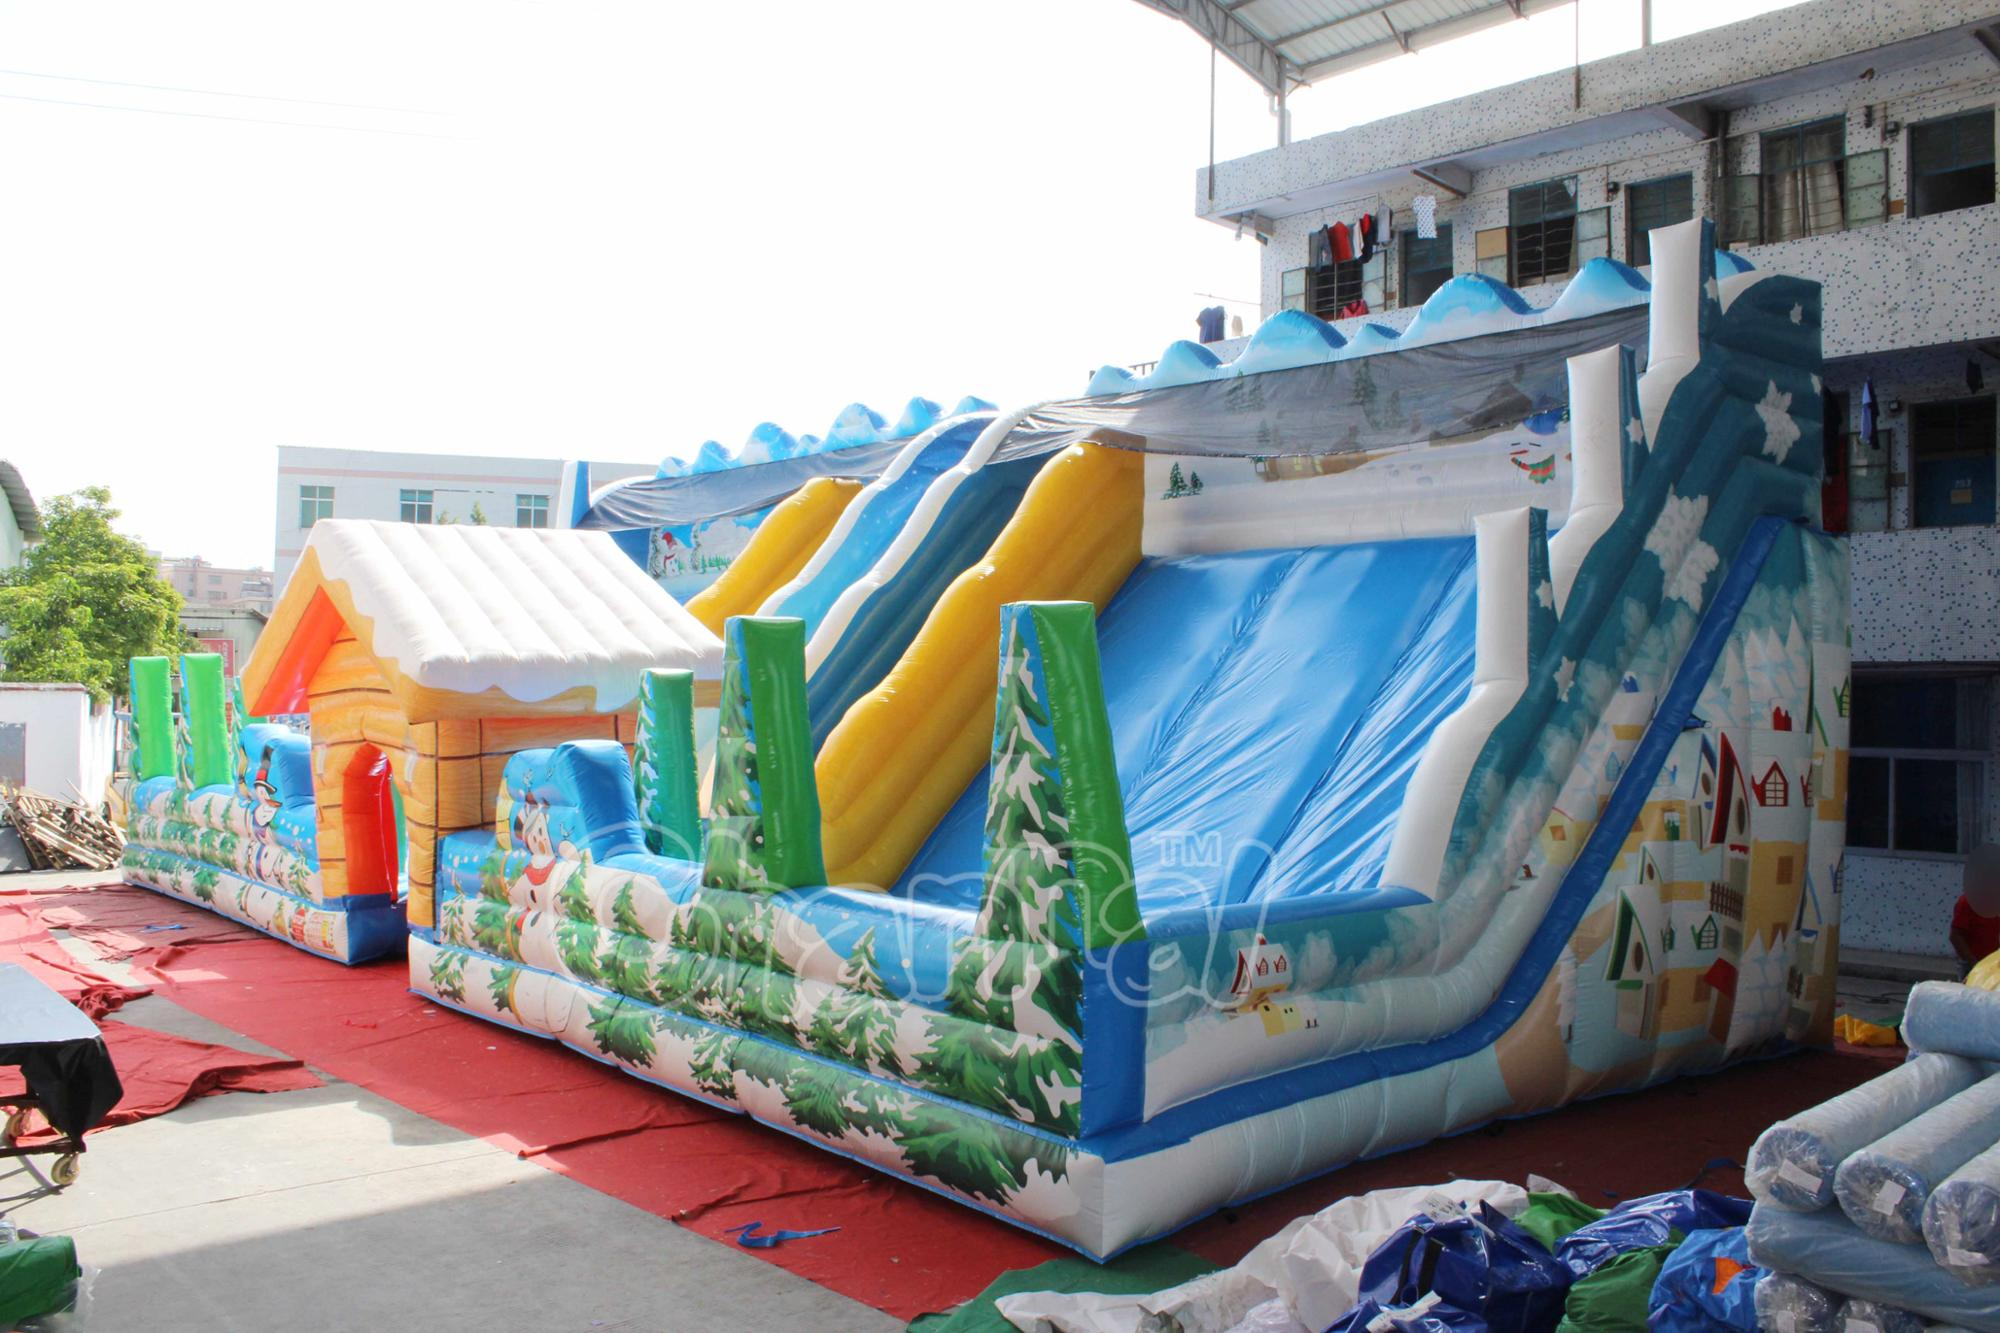 Giant inflatable fun city inflatable playground bouncer slide  Inflatable amusement park on sale